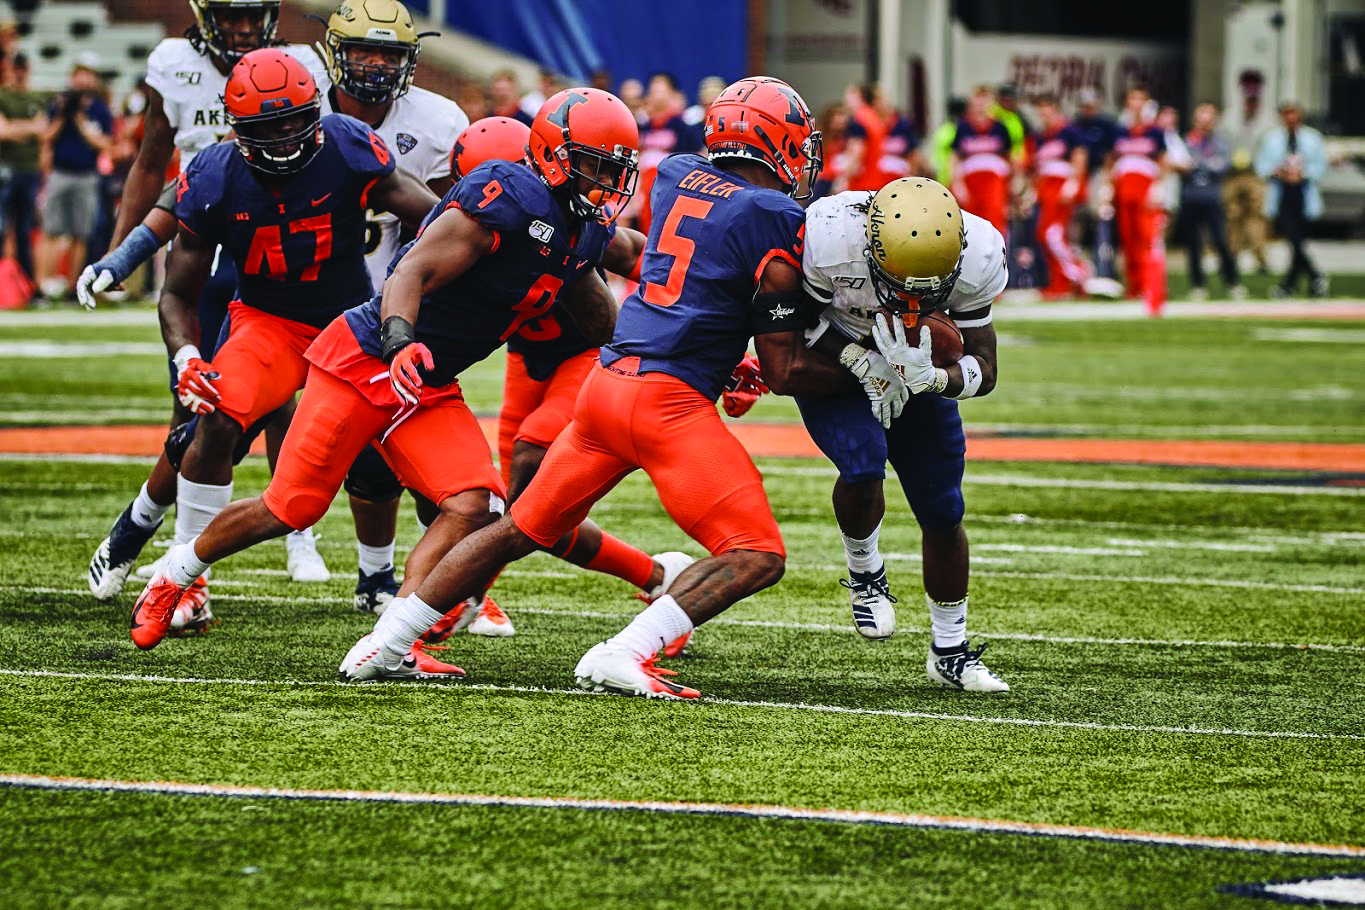 Illinois faces Akron at Memorial Stadium on Saturday. The Illini won 42-3.